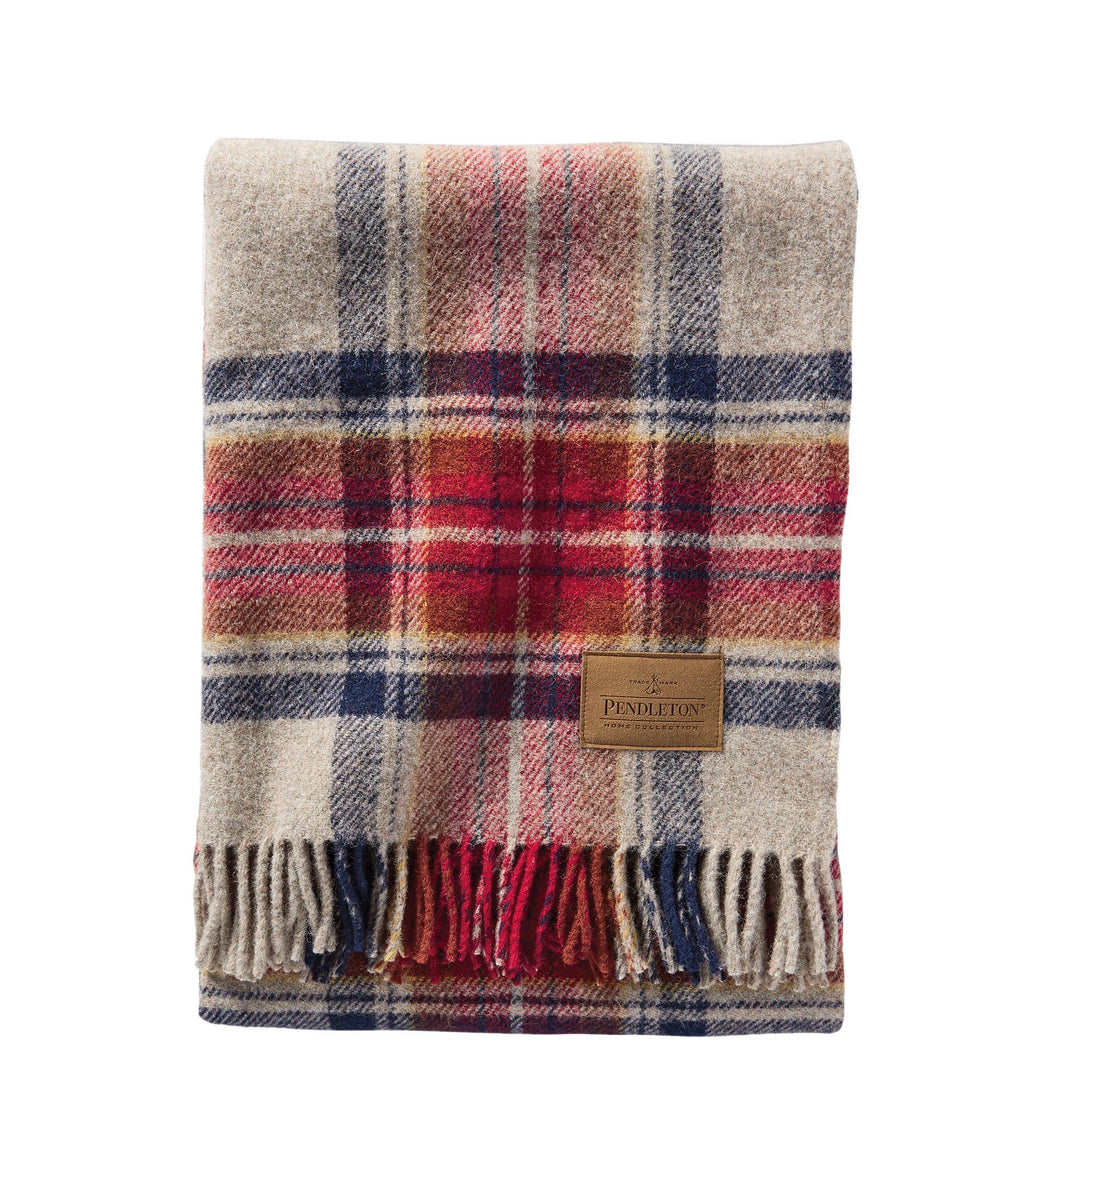 Pendleton Woolen Mills Carry Along Motor Robe Blanket - Vintage Dress Stewart - Outdoor Living/Travel - Iron and Resin